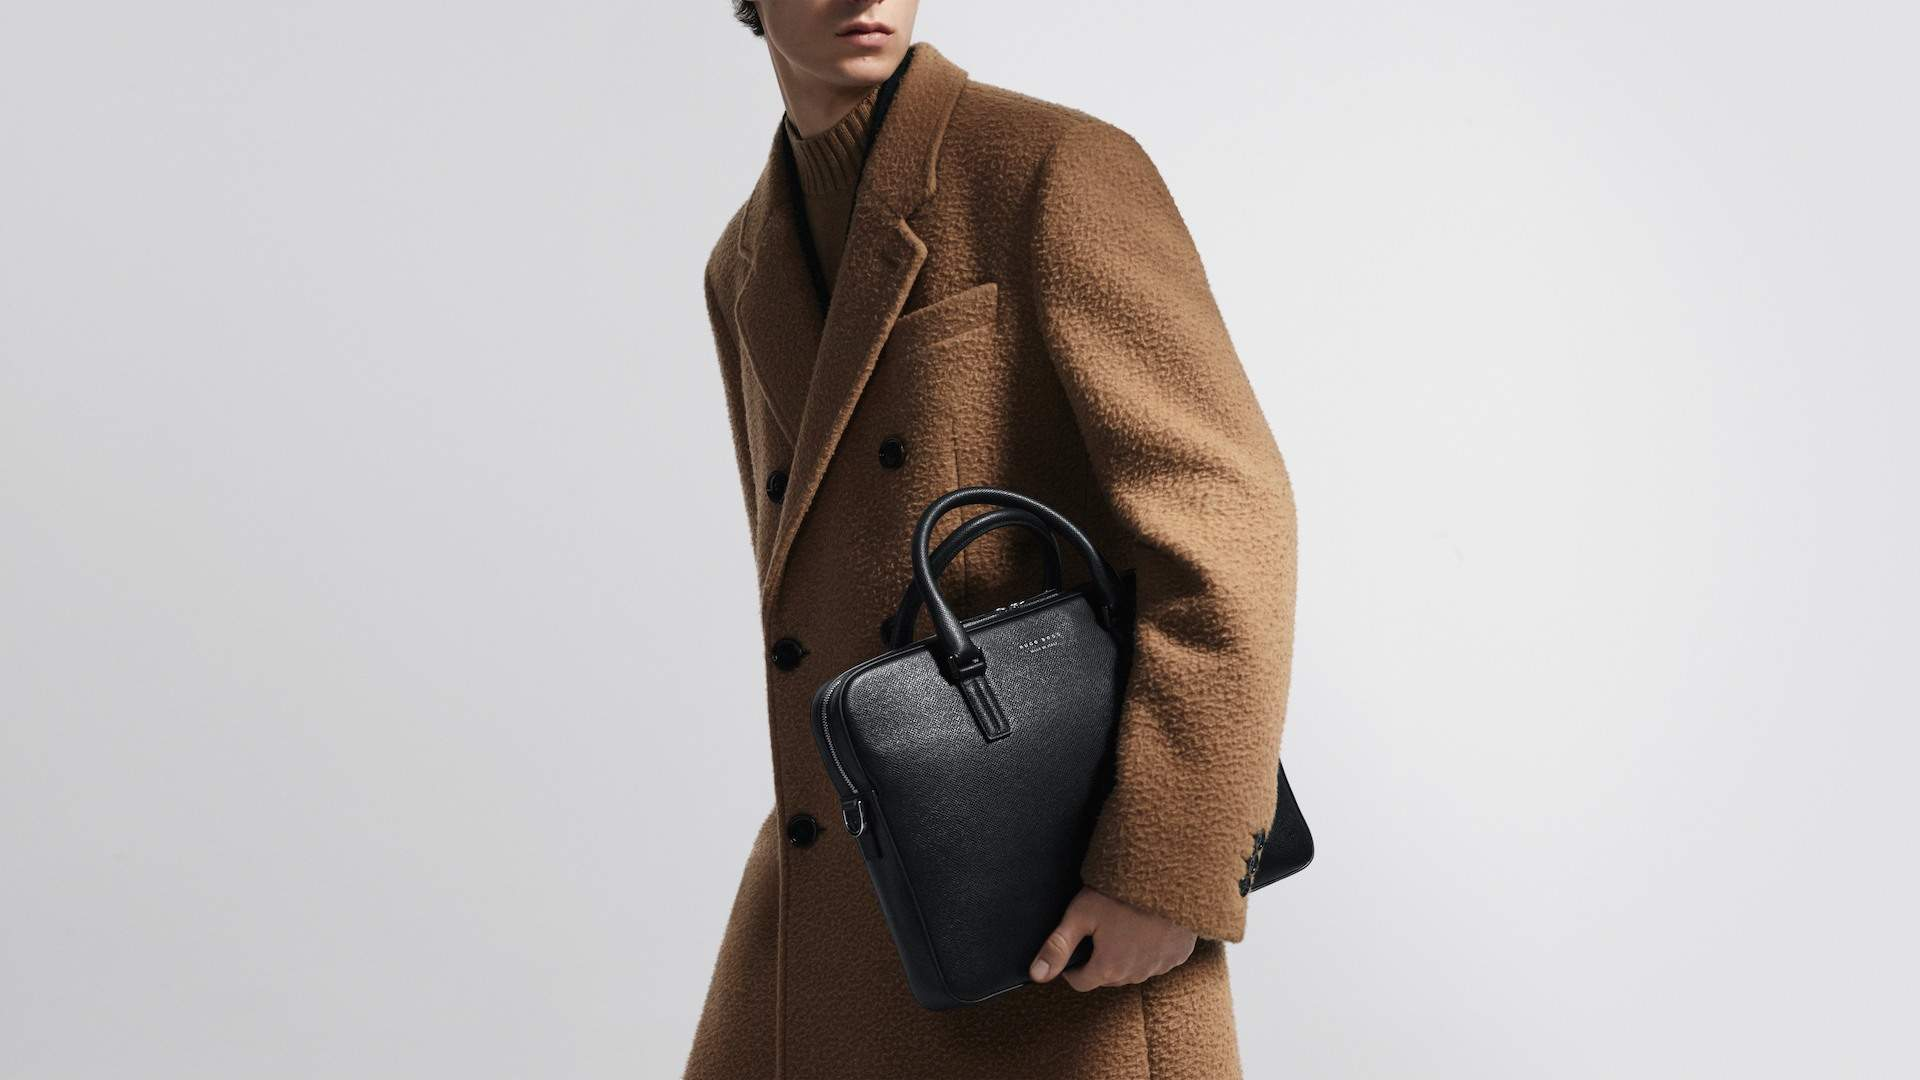 Hugo Boss End-of-Year Outlet Sale